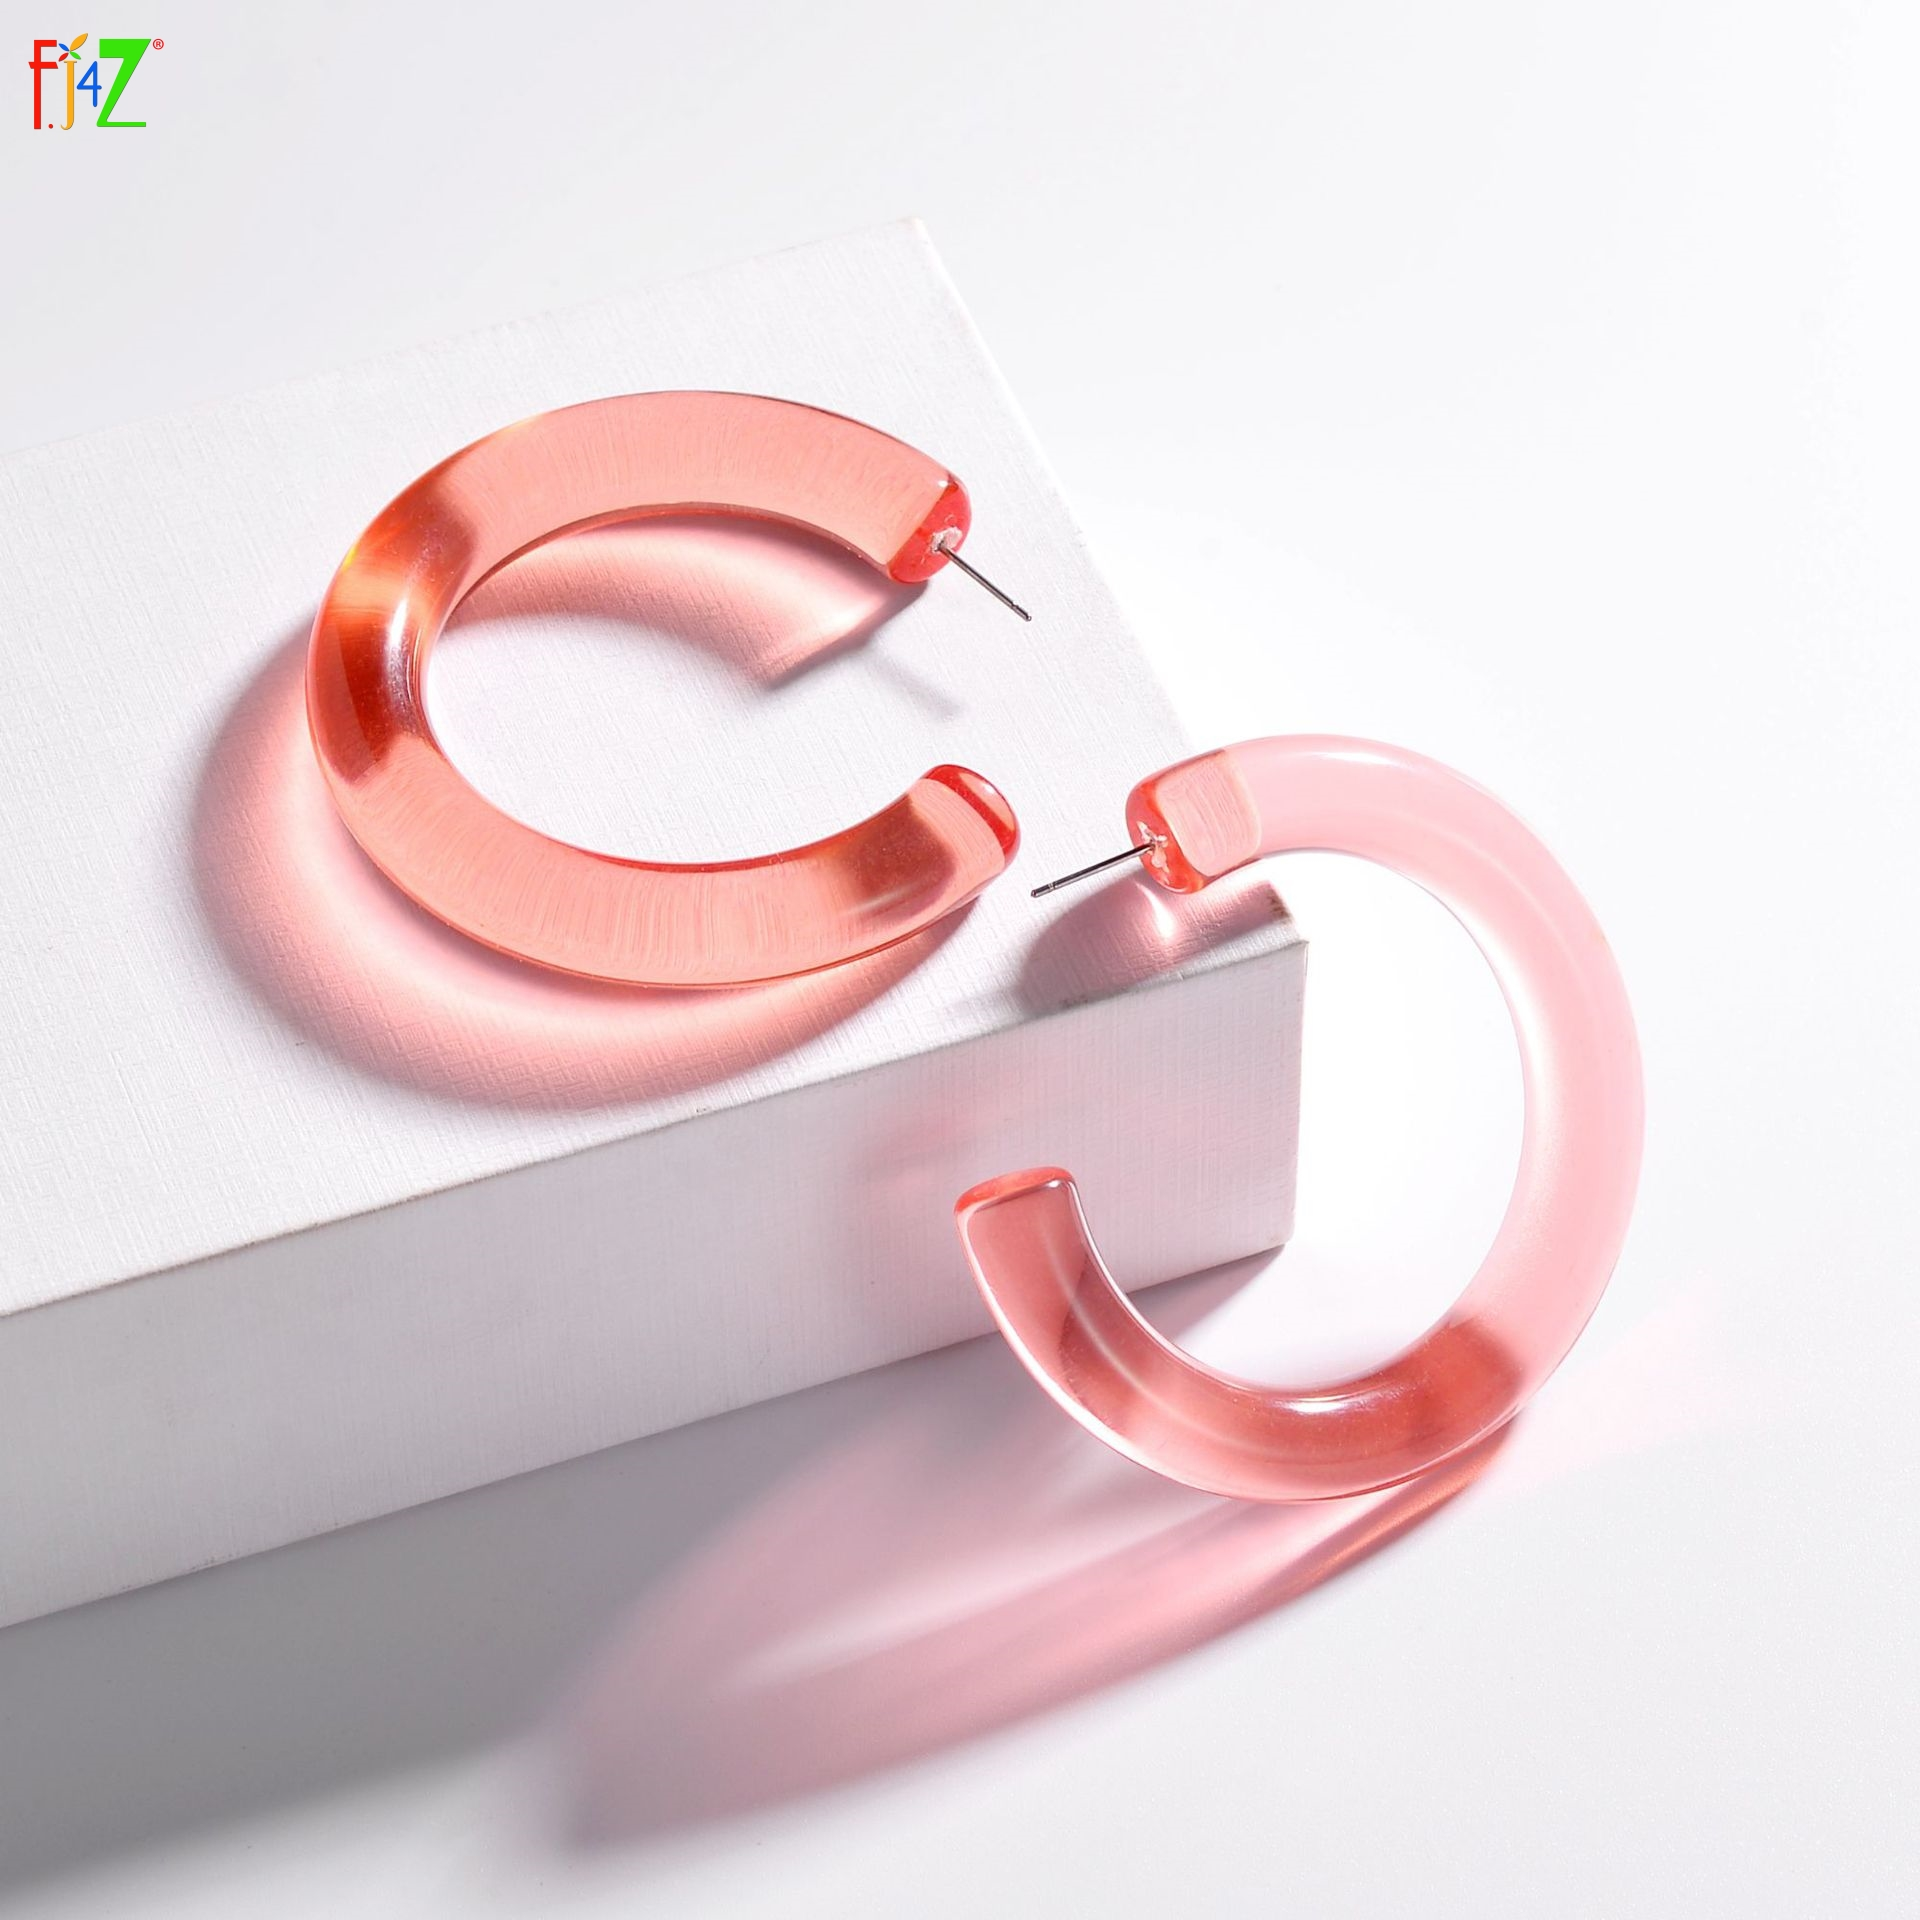 [해외]F.J4Z  Hoop Earrings for Women Simplicity Acrylic Open Earring Hoops C Shape Ear Accessories Minimalist Jewelry/F.J4Z  Hoop Earrings for Women Sim